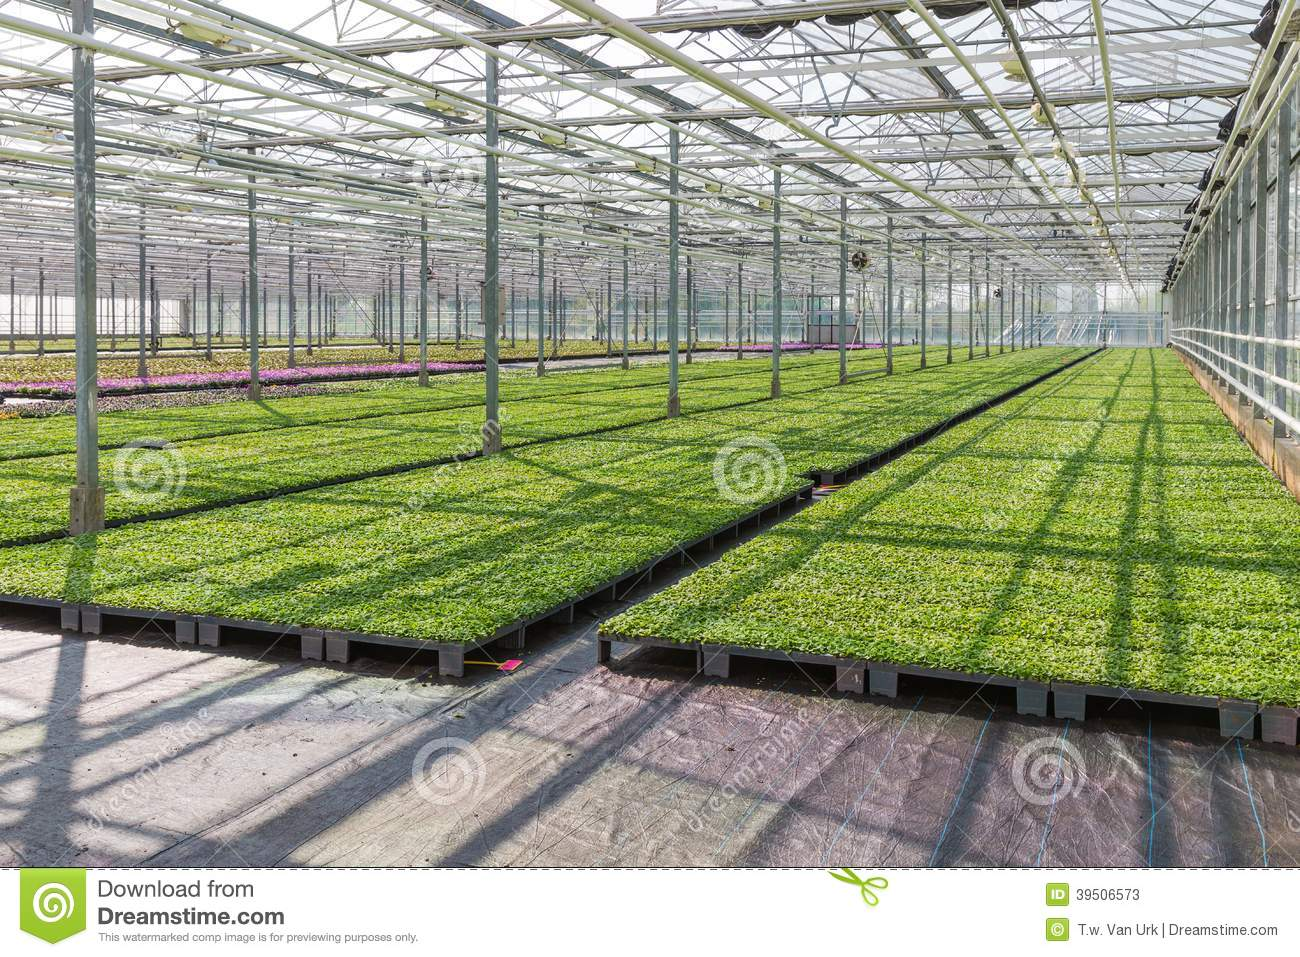 Cultivation of plants in a Dutch greenhouse